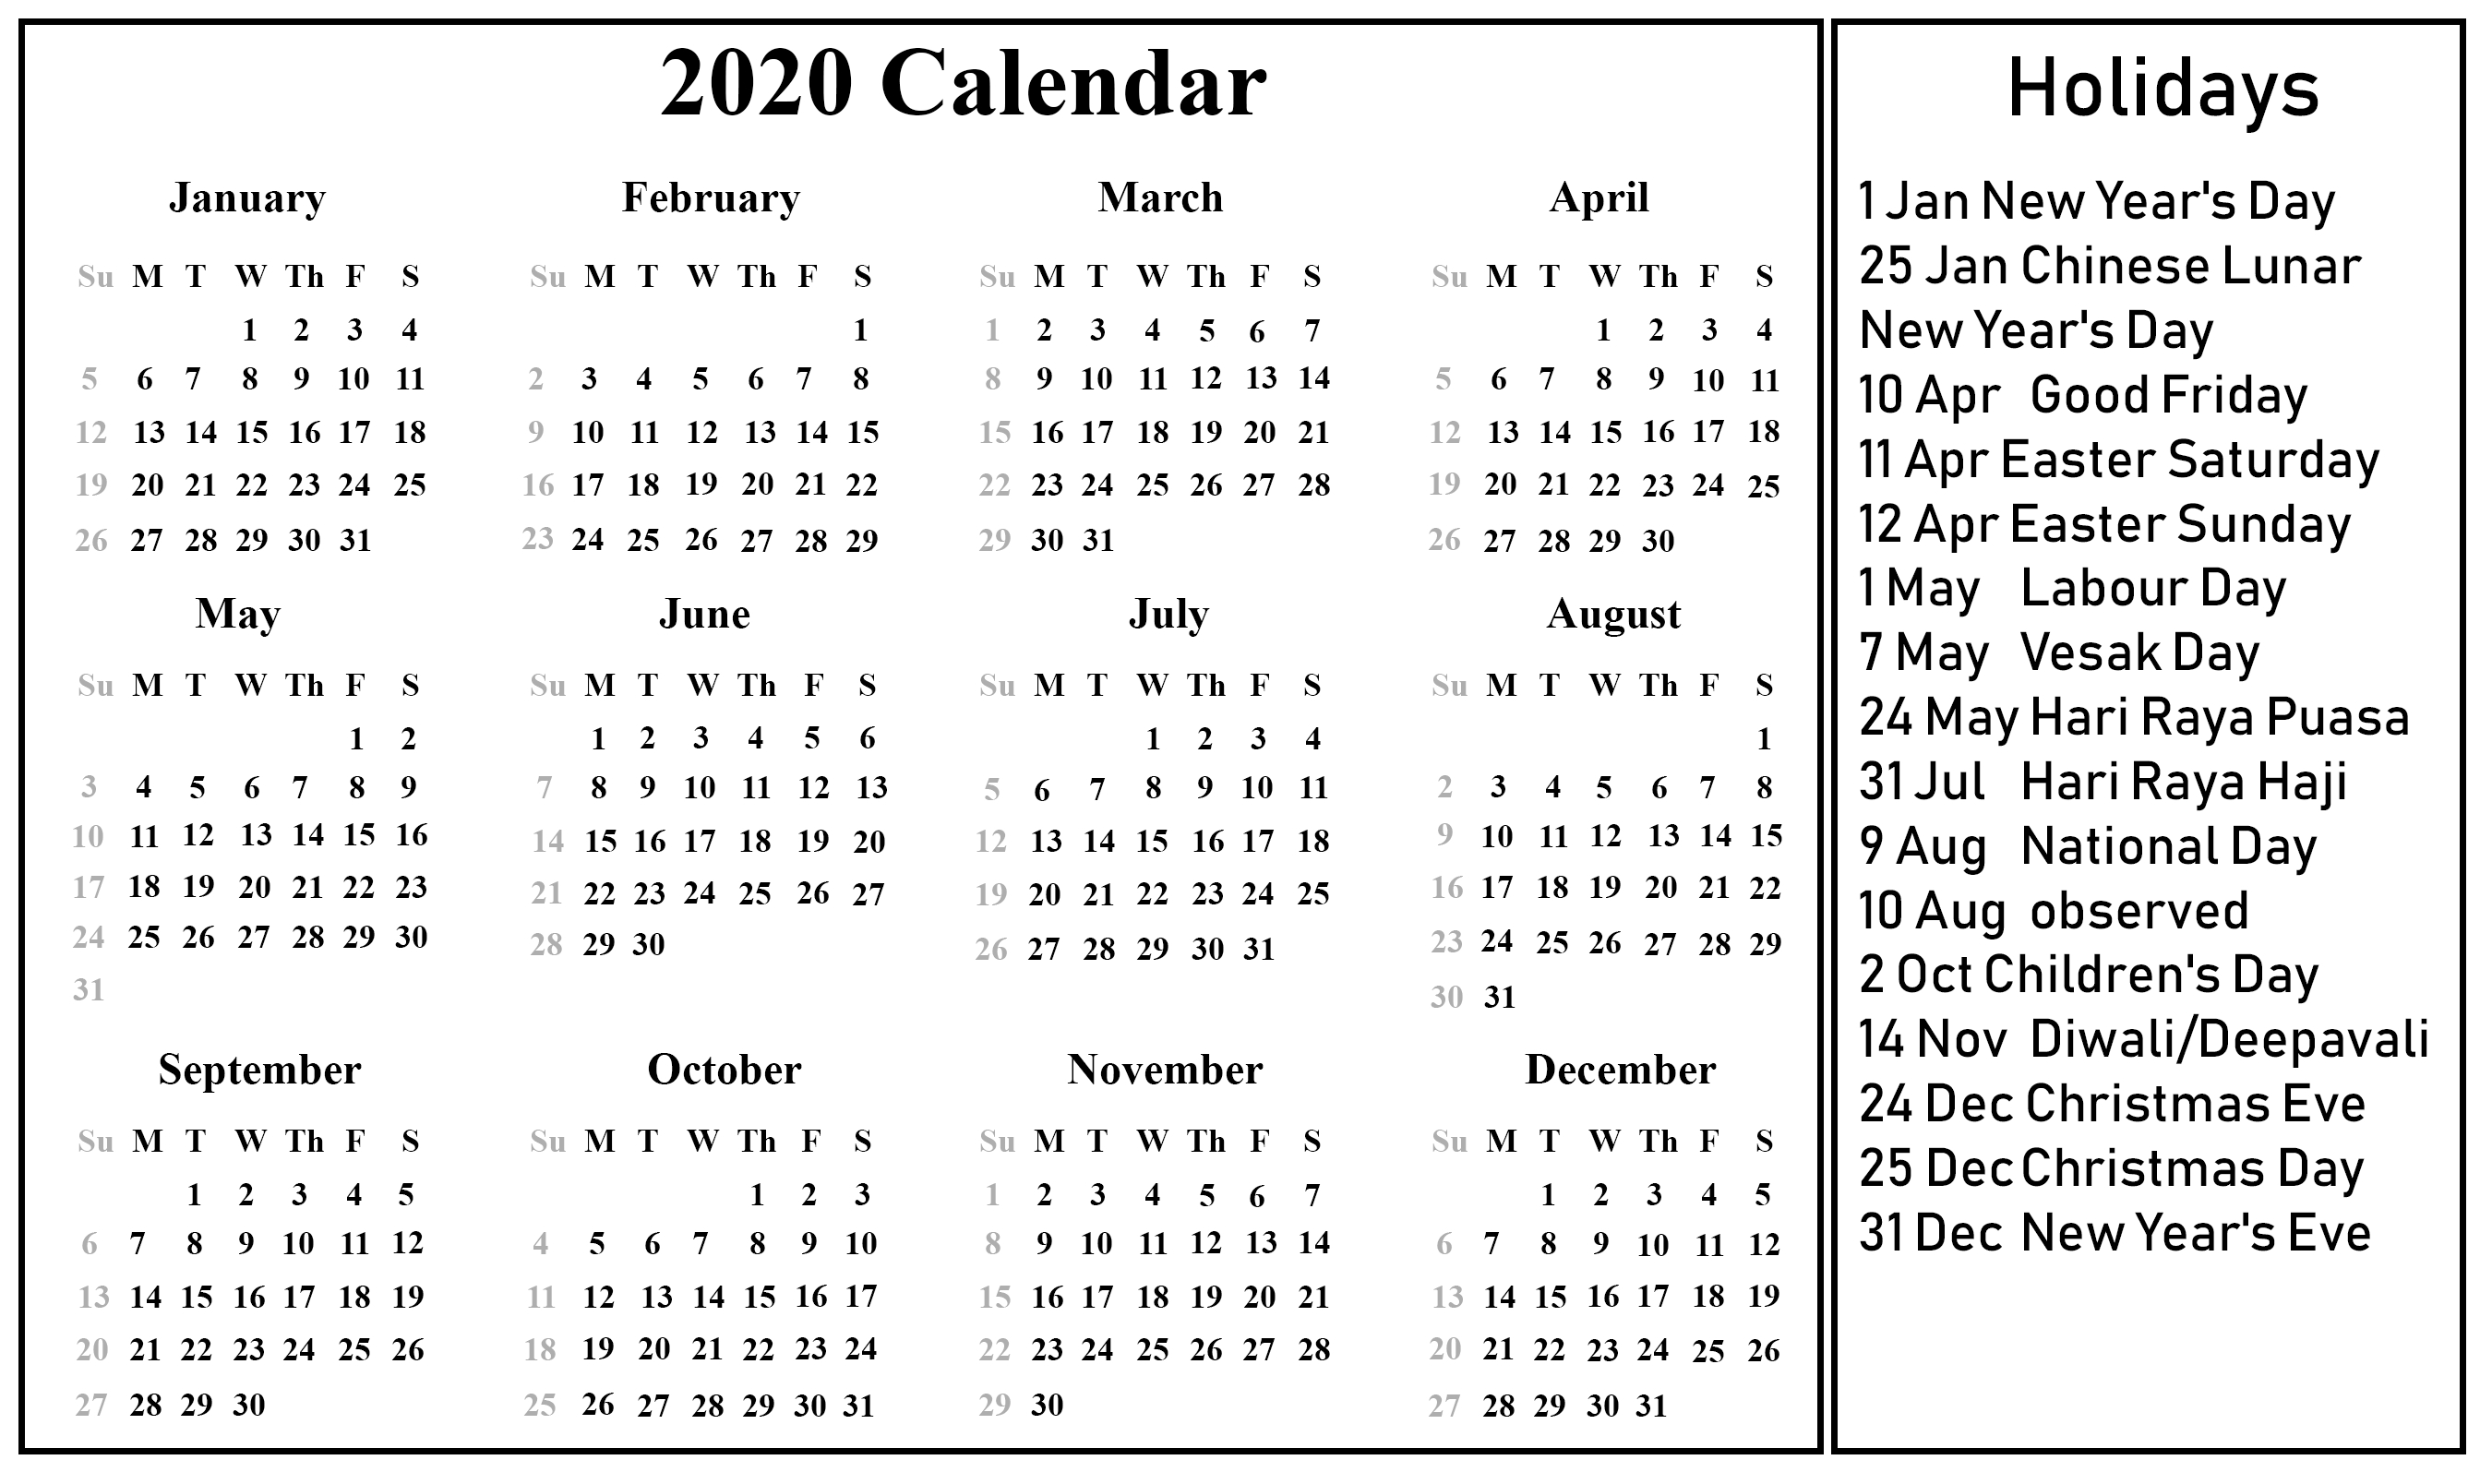 Singapore 2020 Printable Holidays Calendar | Printable Year 2020 Calendar Singapore